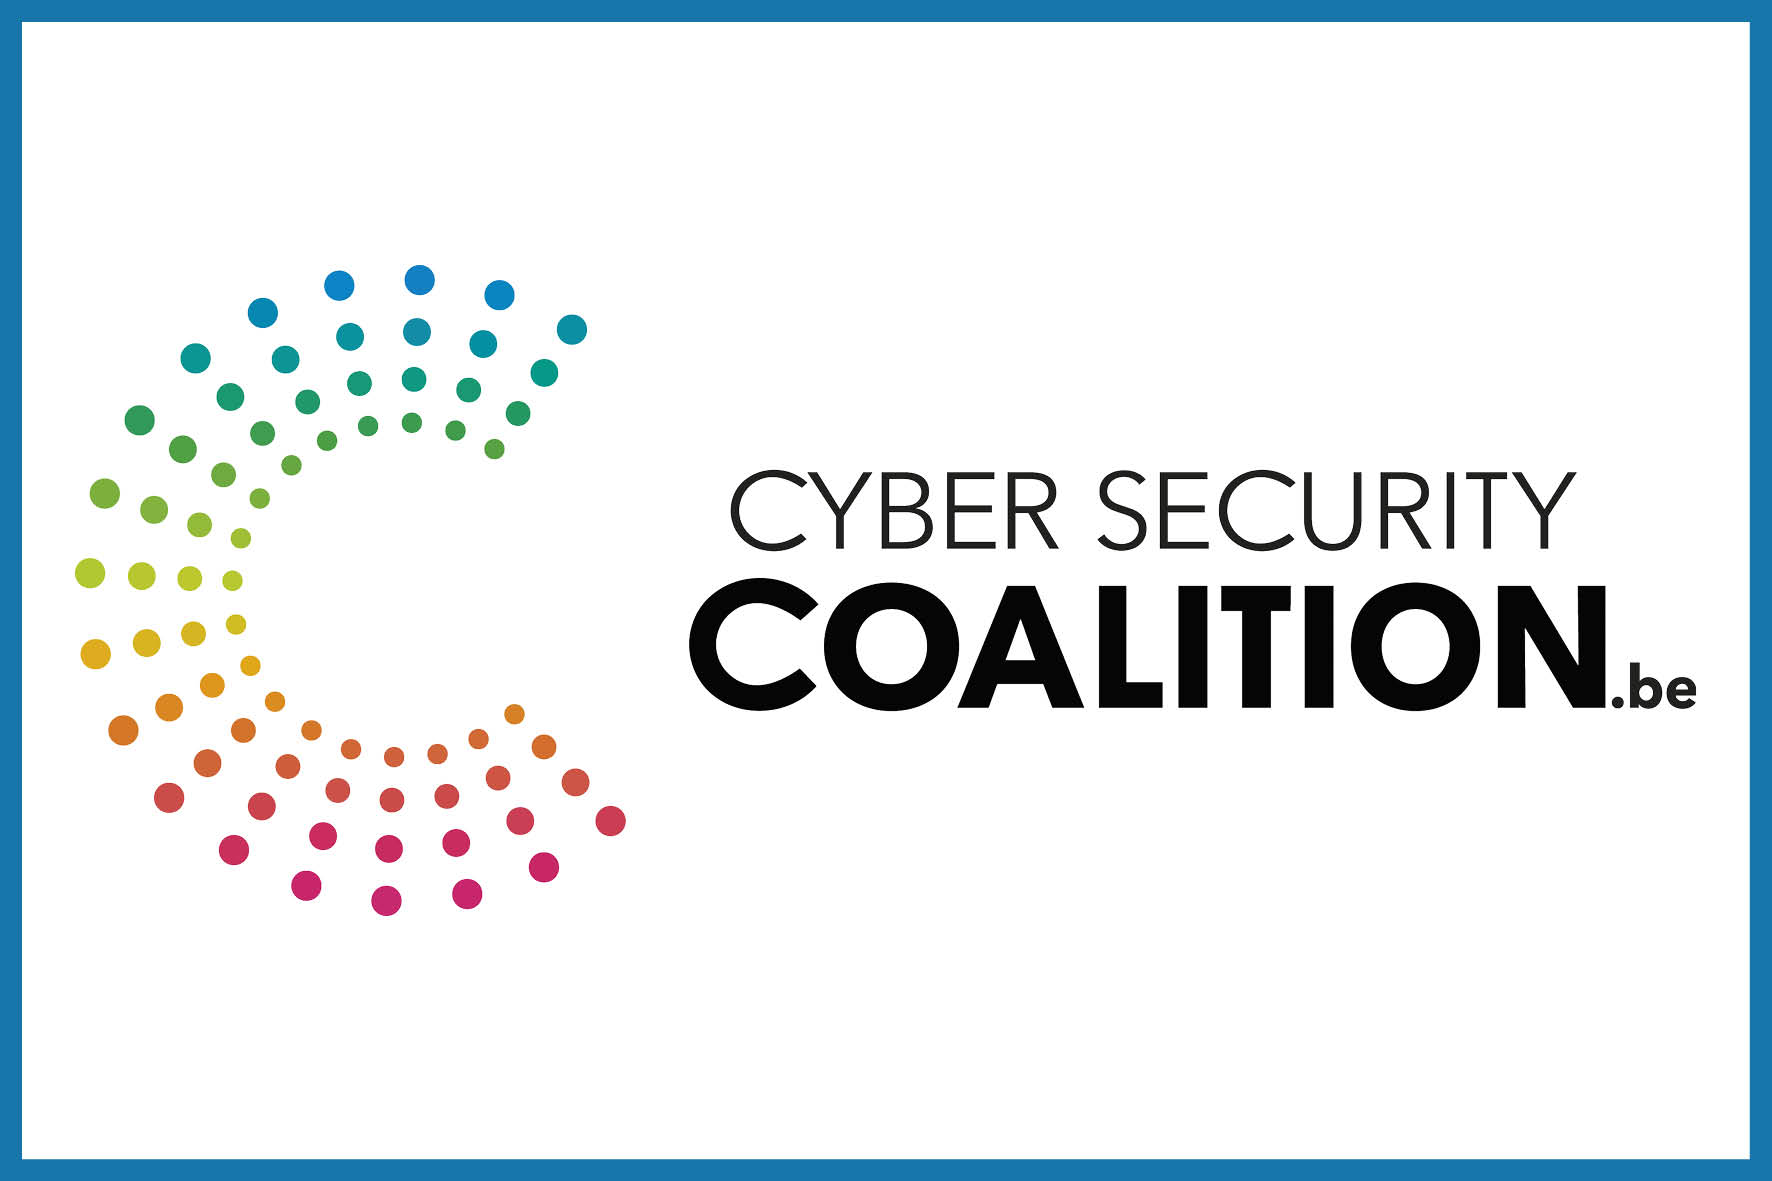 ict-infra-cyber-security-coalition